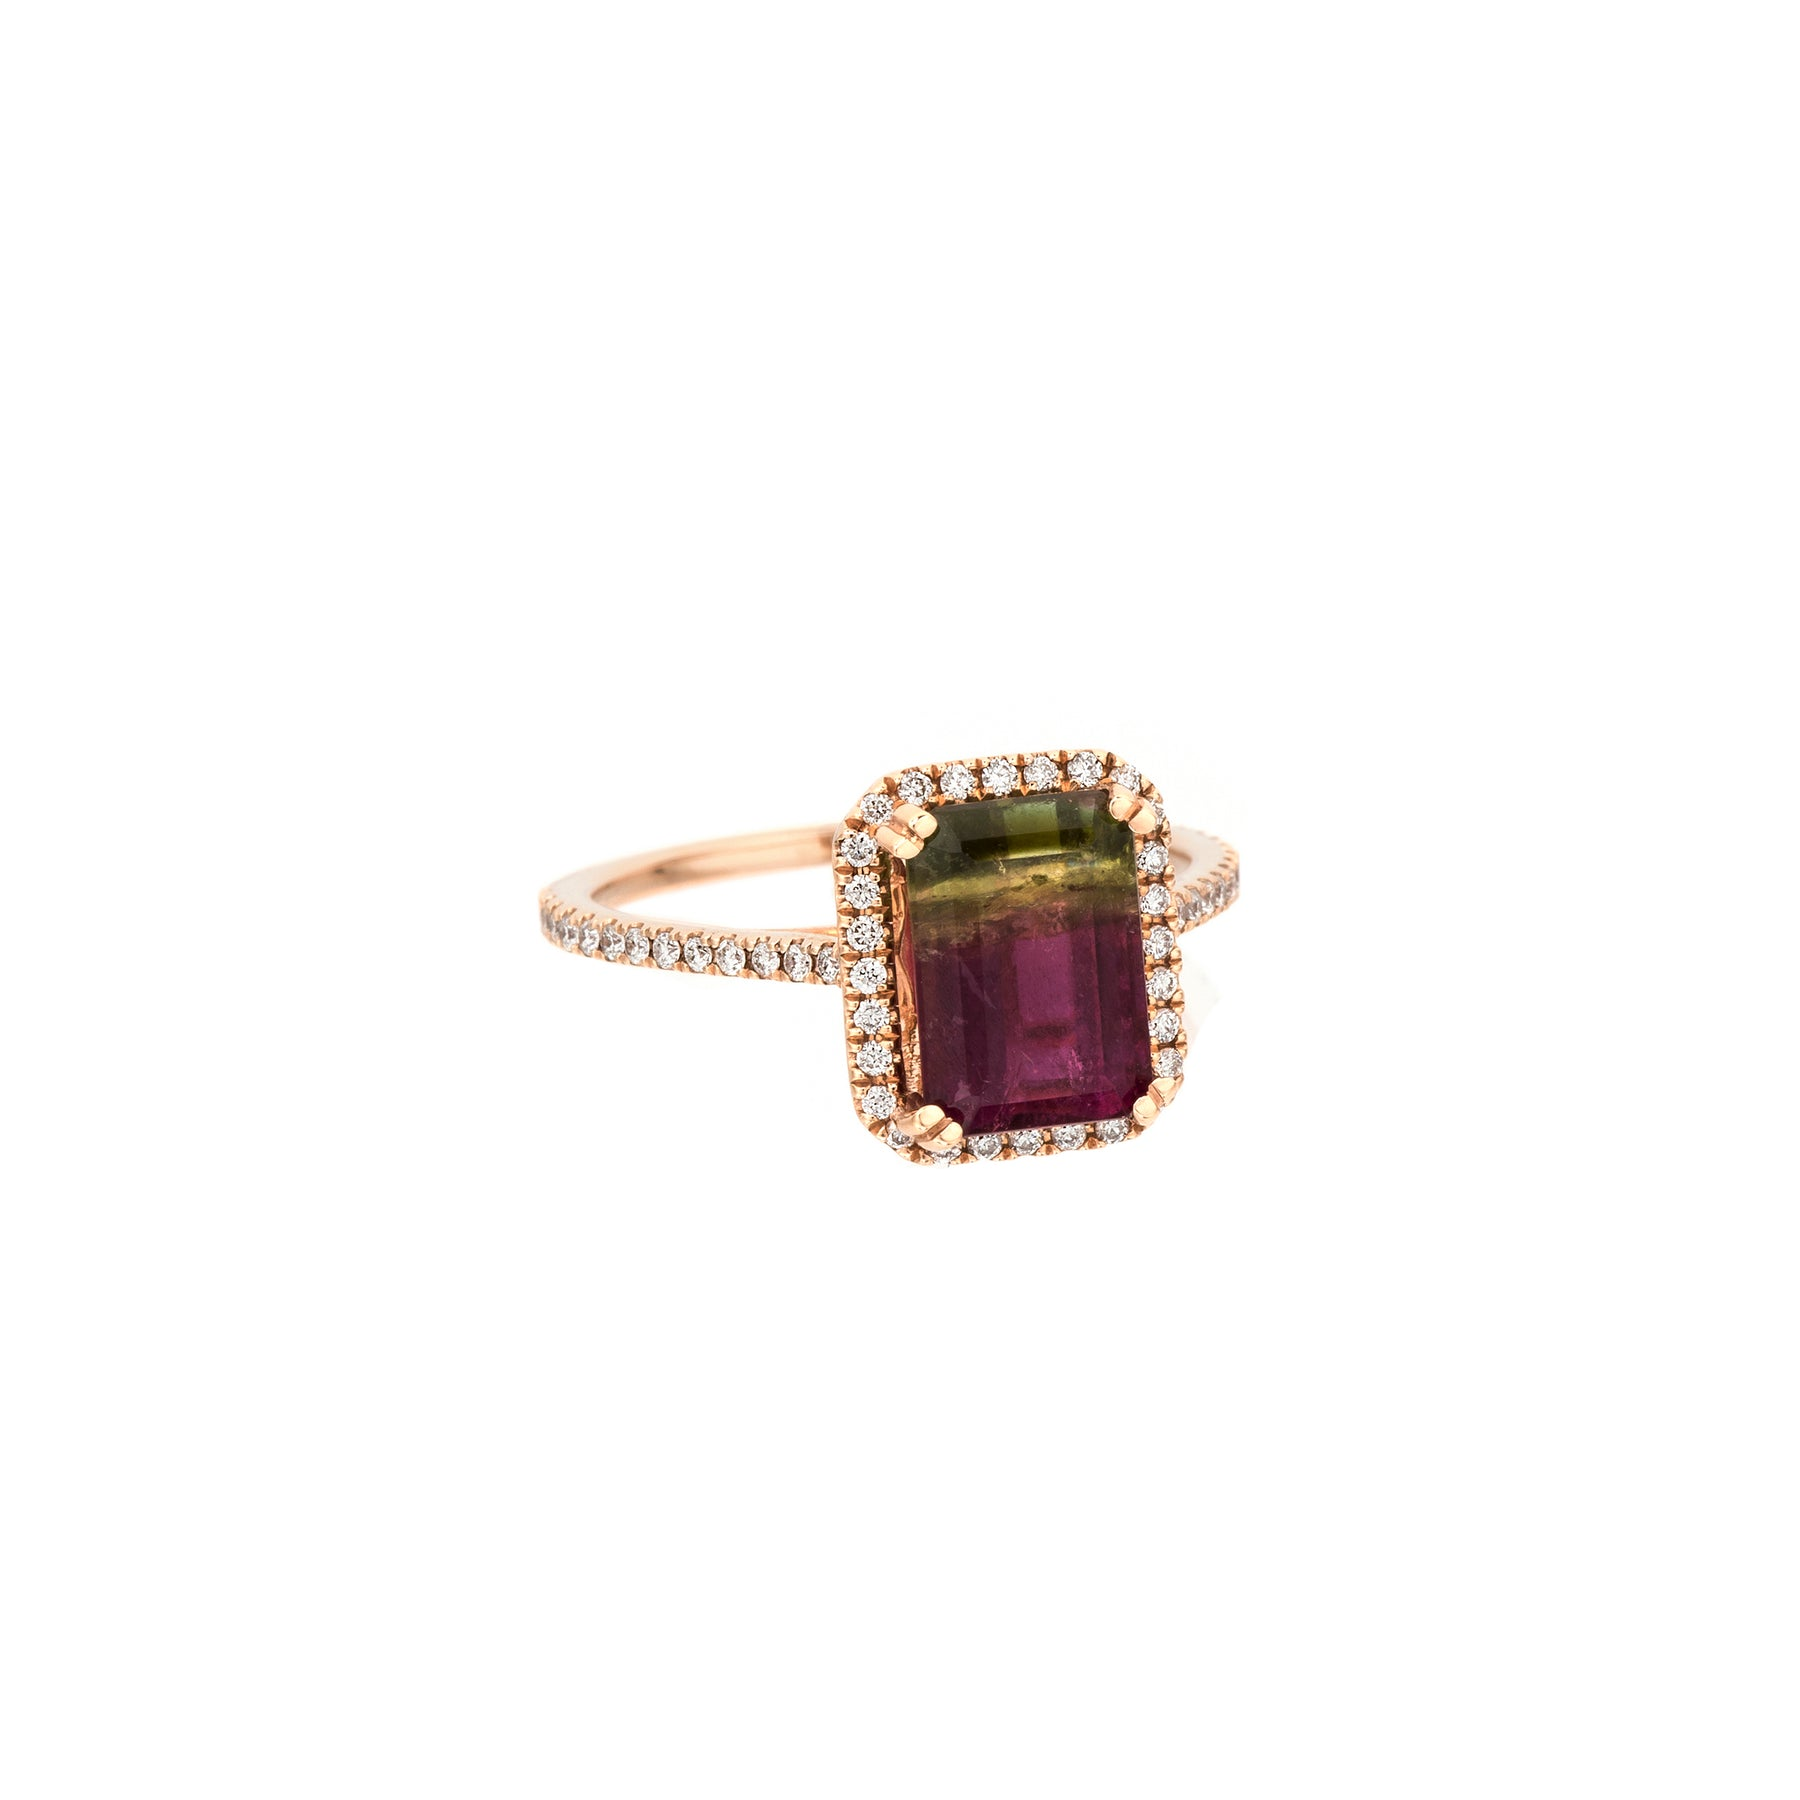 Bicolor Pink & Green Tourmaline Cushion Cut Ring